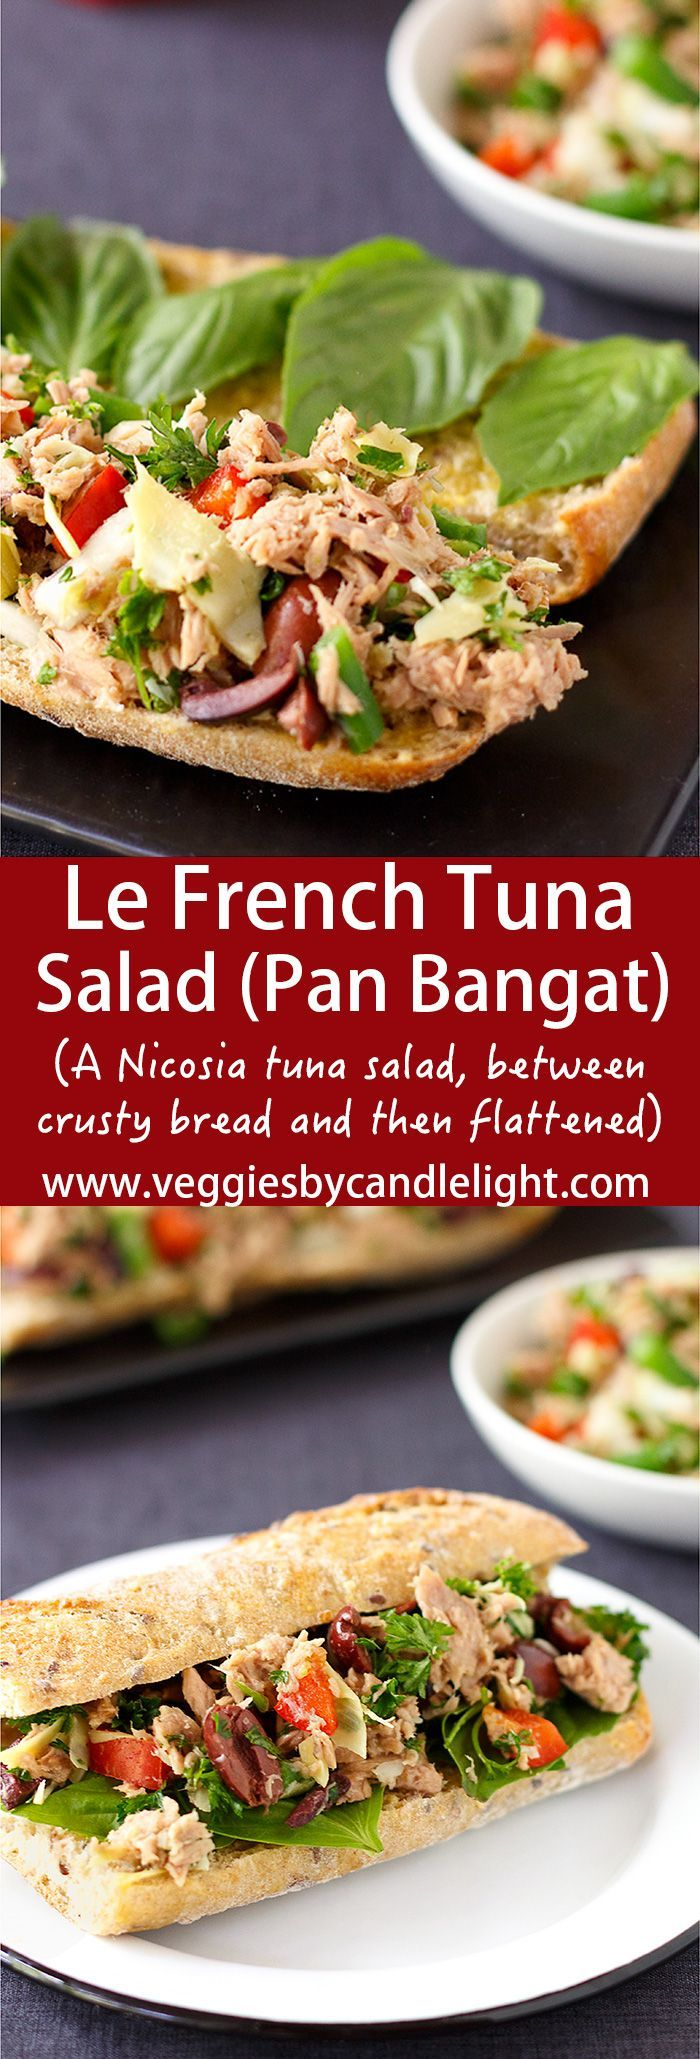 "Le French Tuna Salad (Pan Bagnat) - Pan Bagnat (or ""bathed bread"") - A Nicosia tuna salad, between crusty bread that's been slicked with garlic & oil, flattened, & left in the fridge overnight"